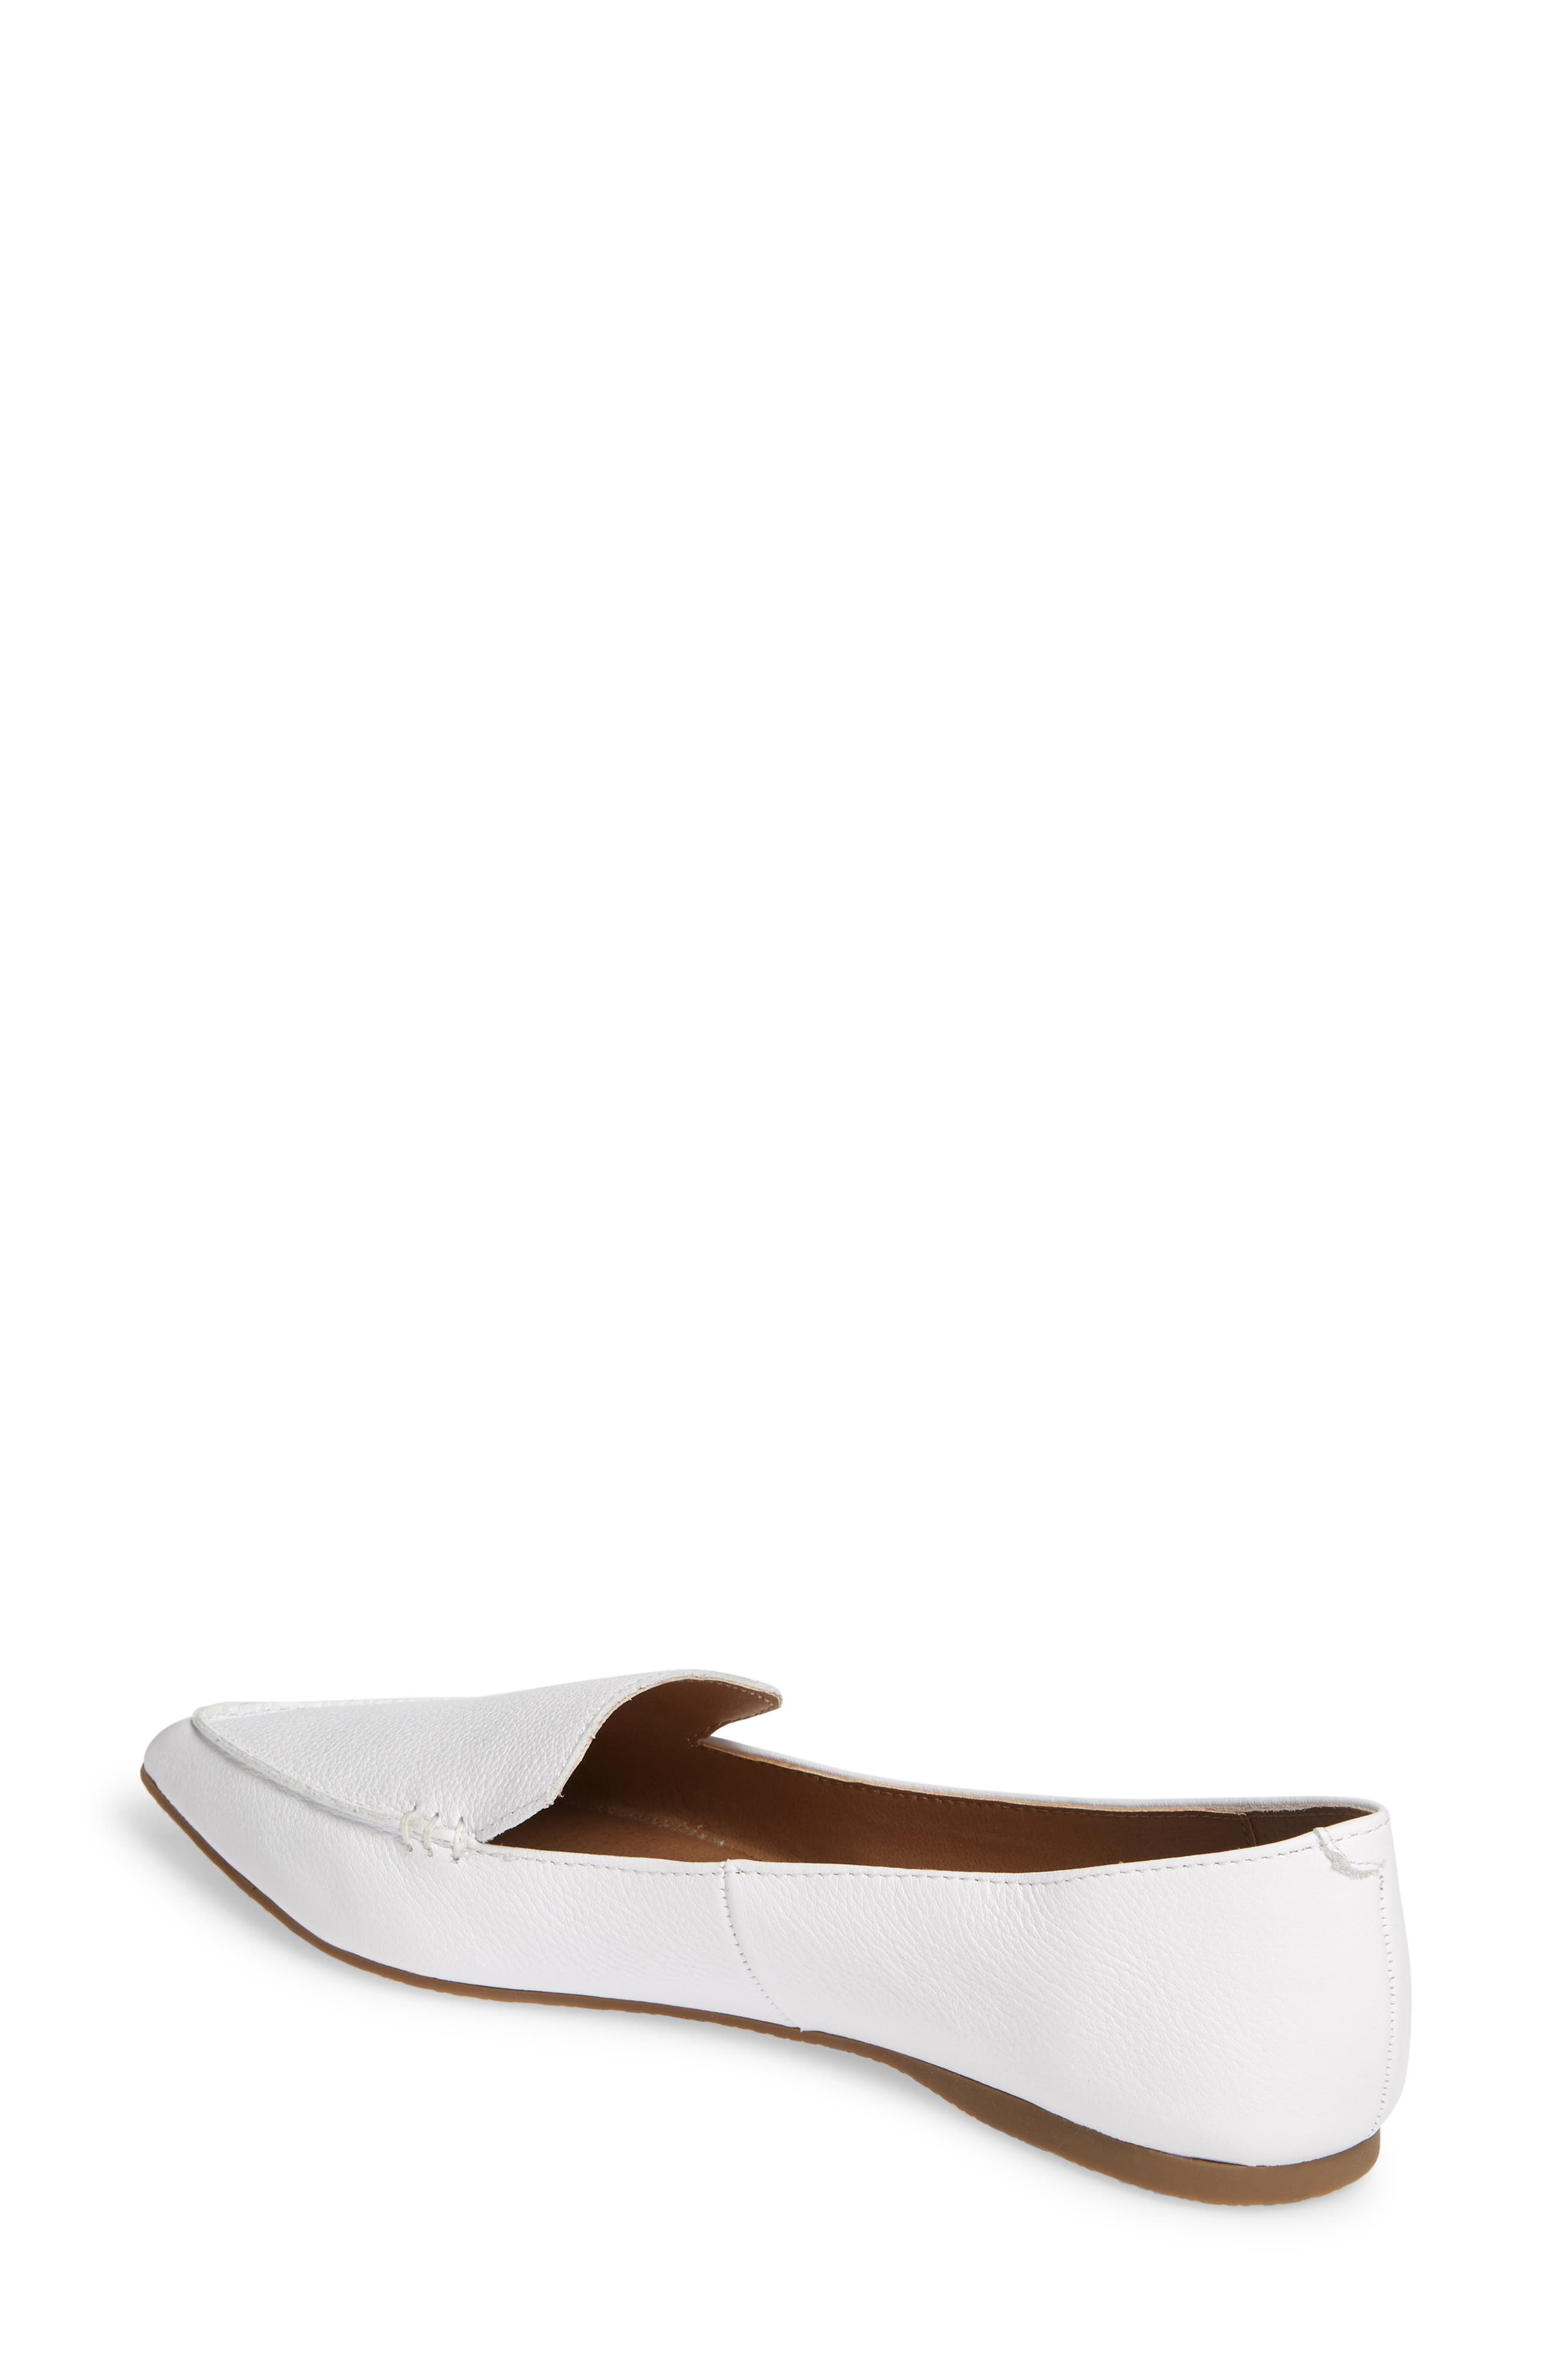 STEVE MADDEN,                             Feather Loafer Flat,                             Alternate thumbnail 2, color,                             WHITE LEATHER